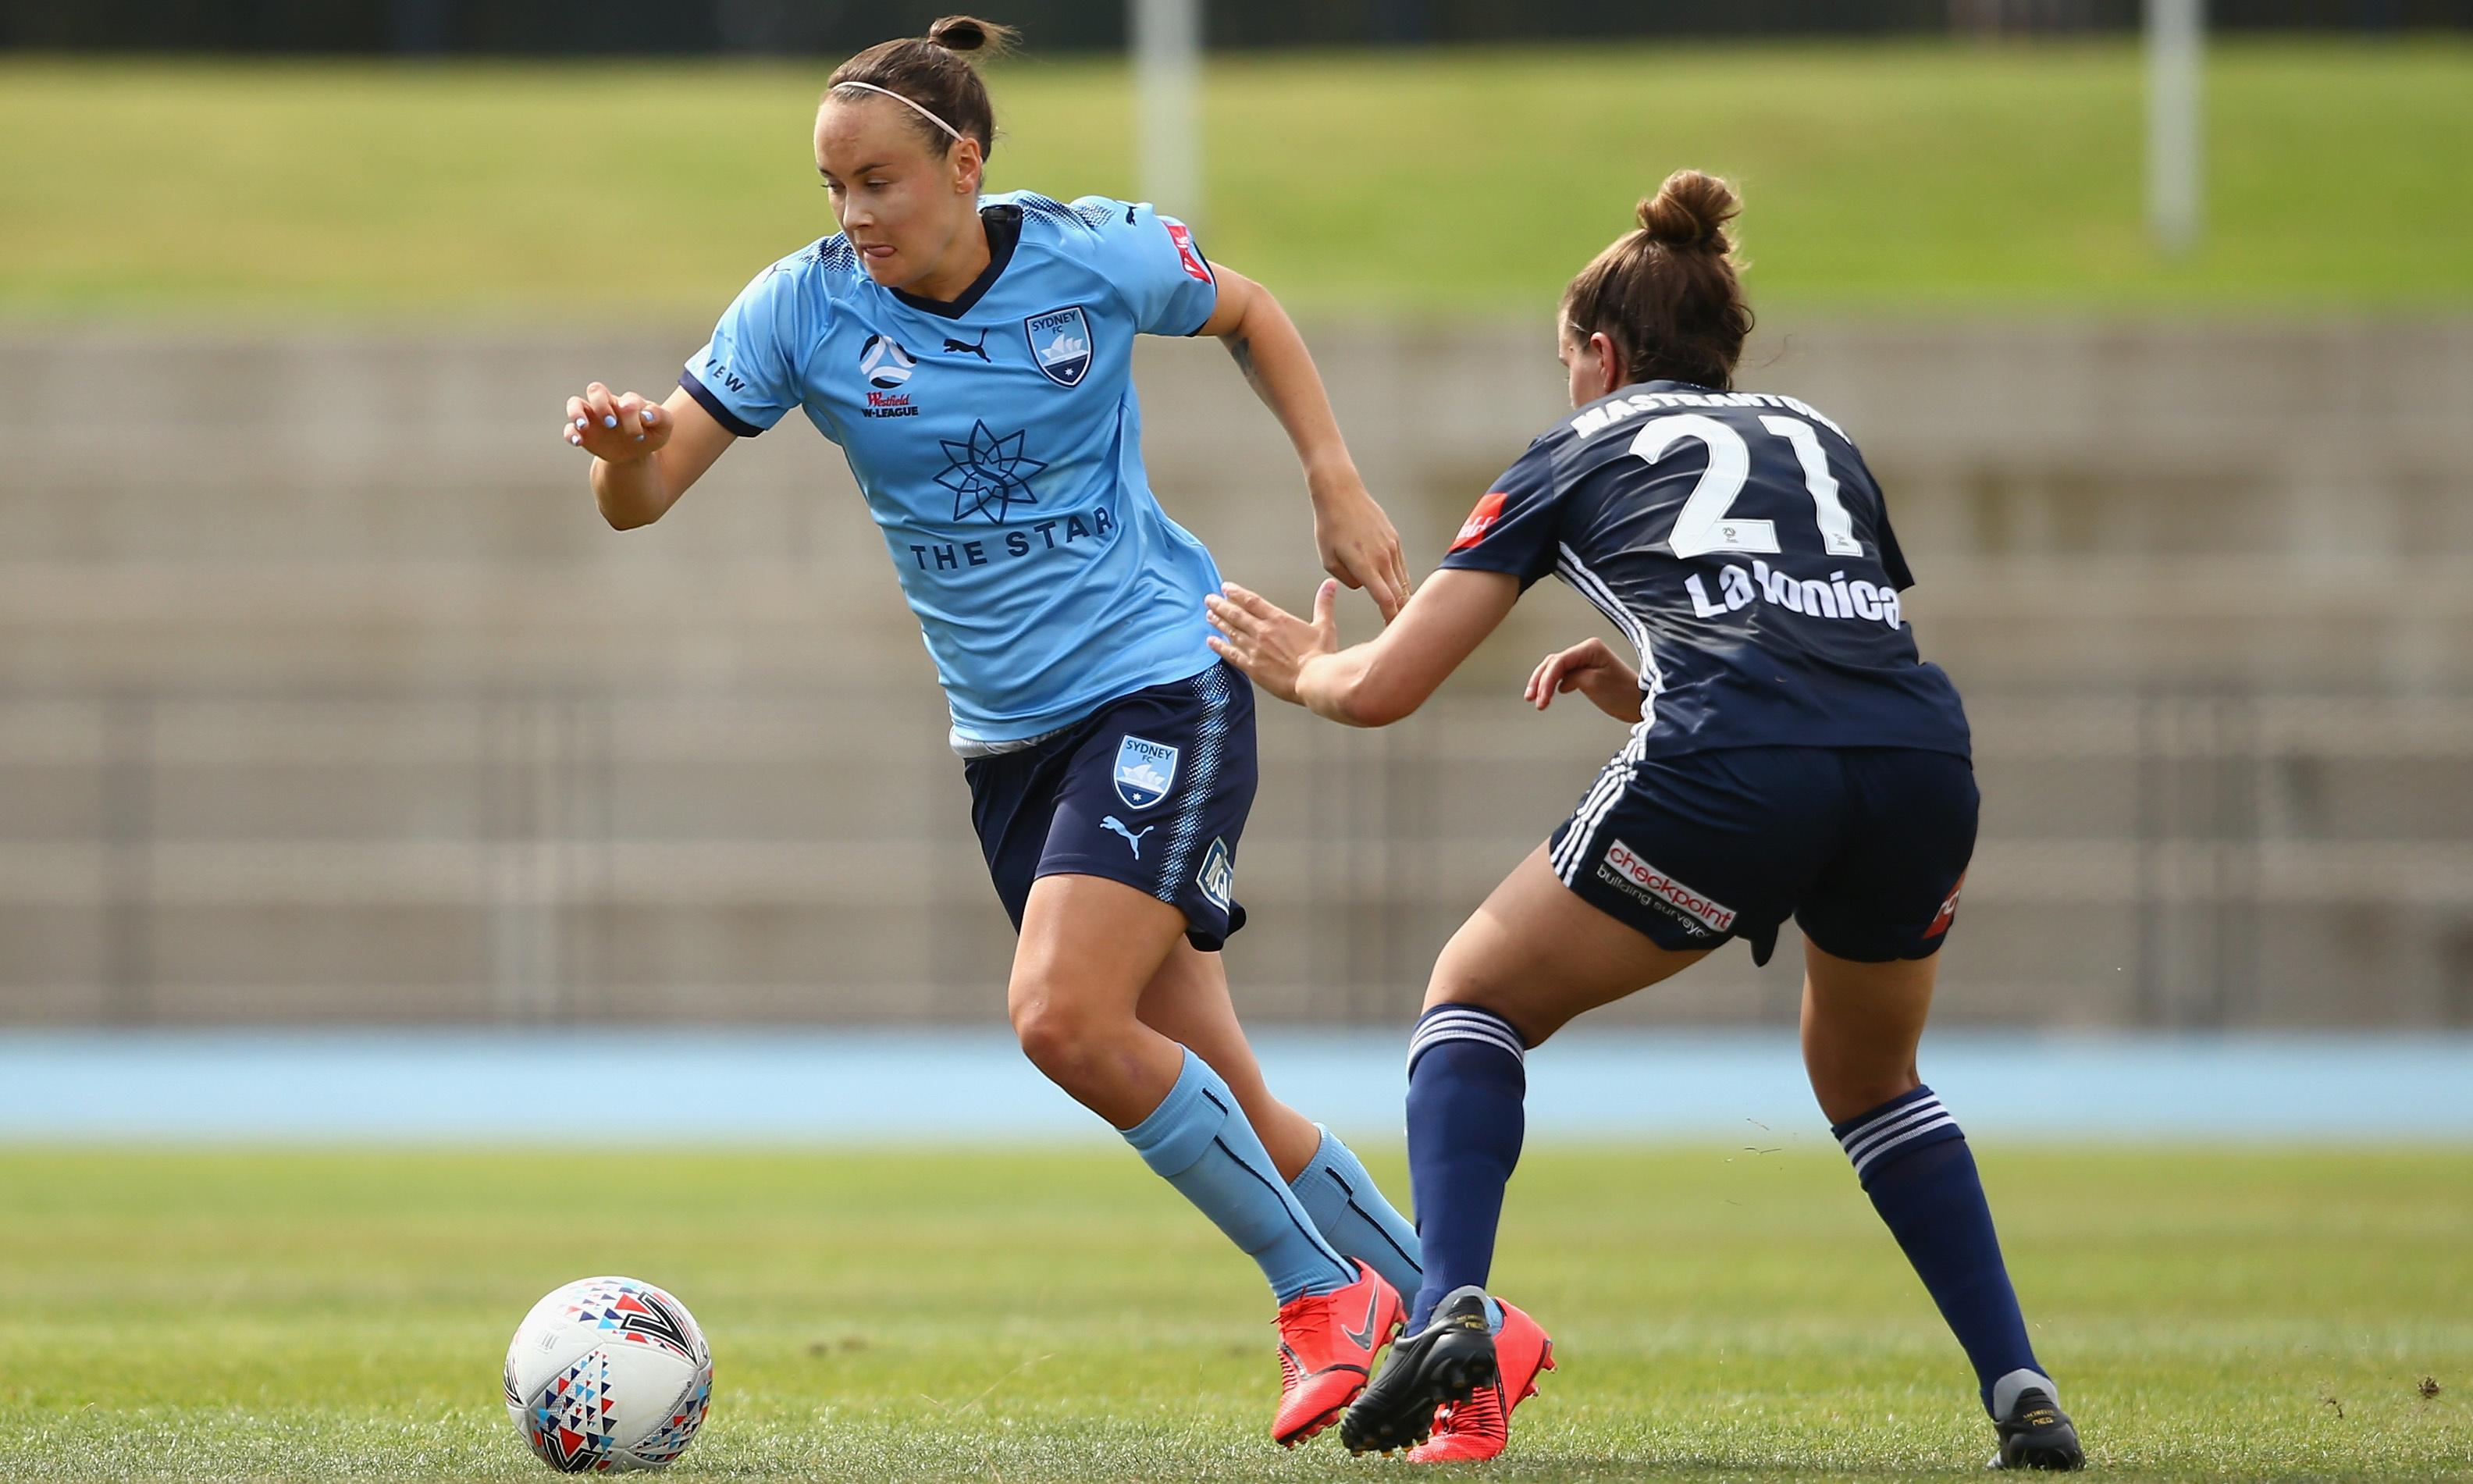 W-League draw finally released with Big Blue highlighting opening round of season